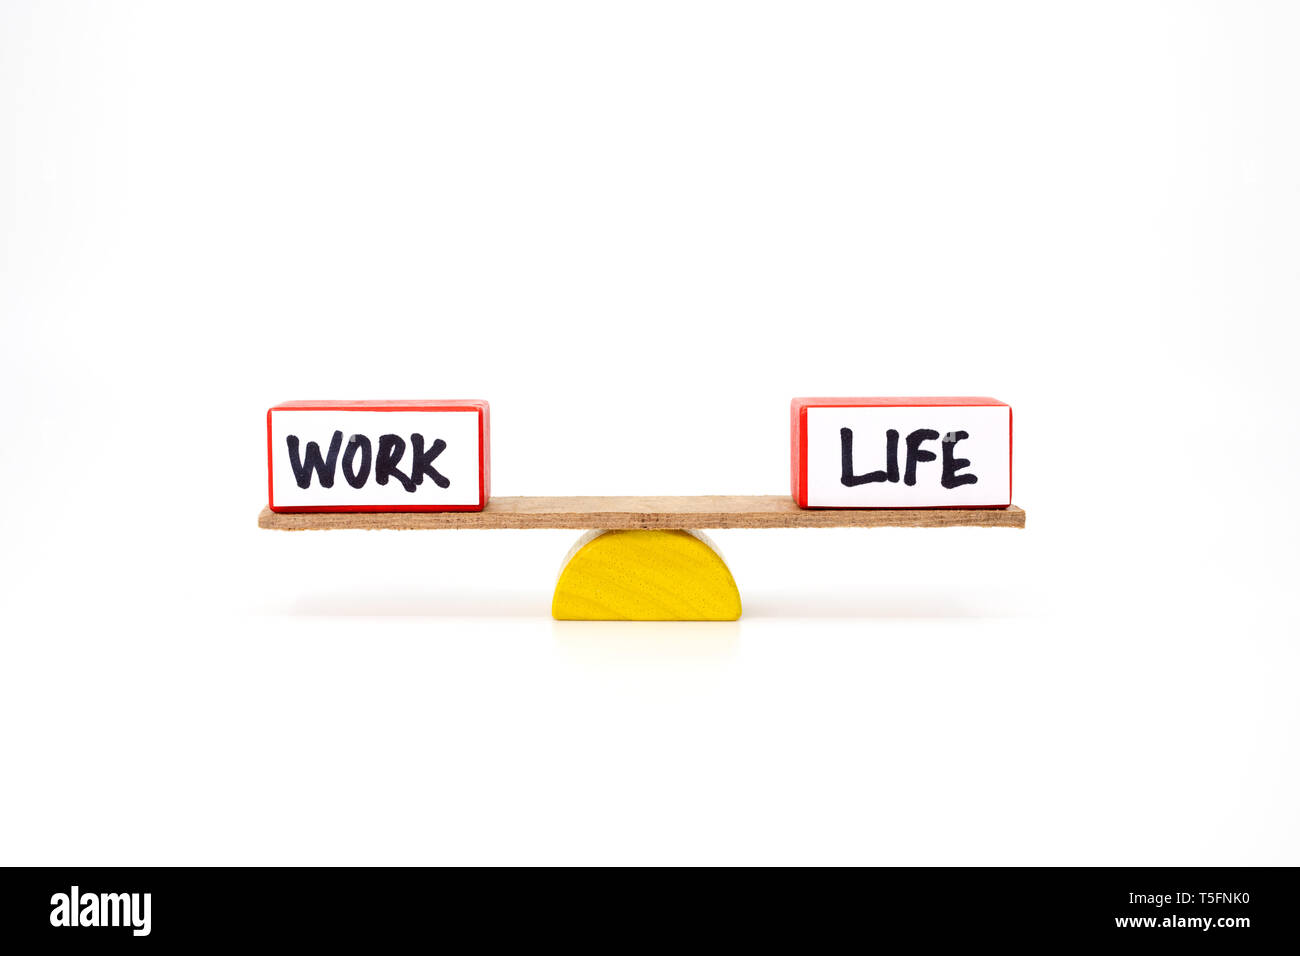 Work life balance concept with two blocks representing work and life - Stock Image